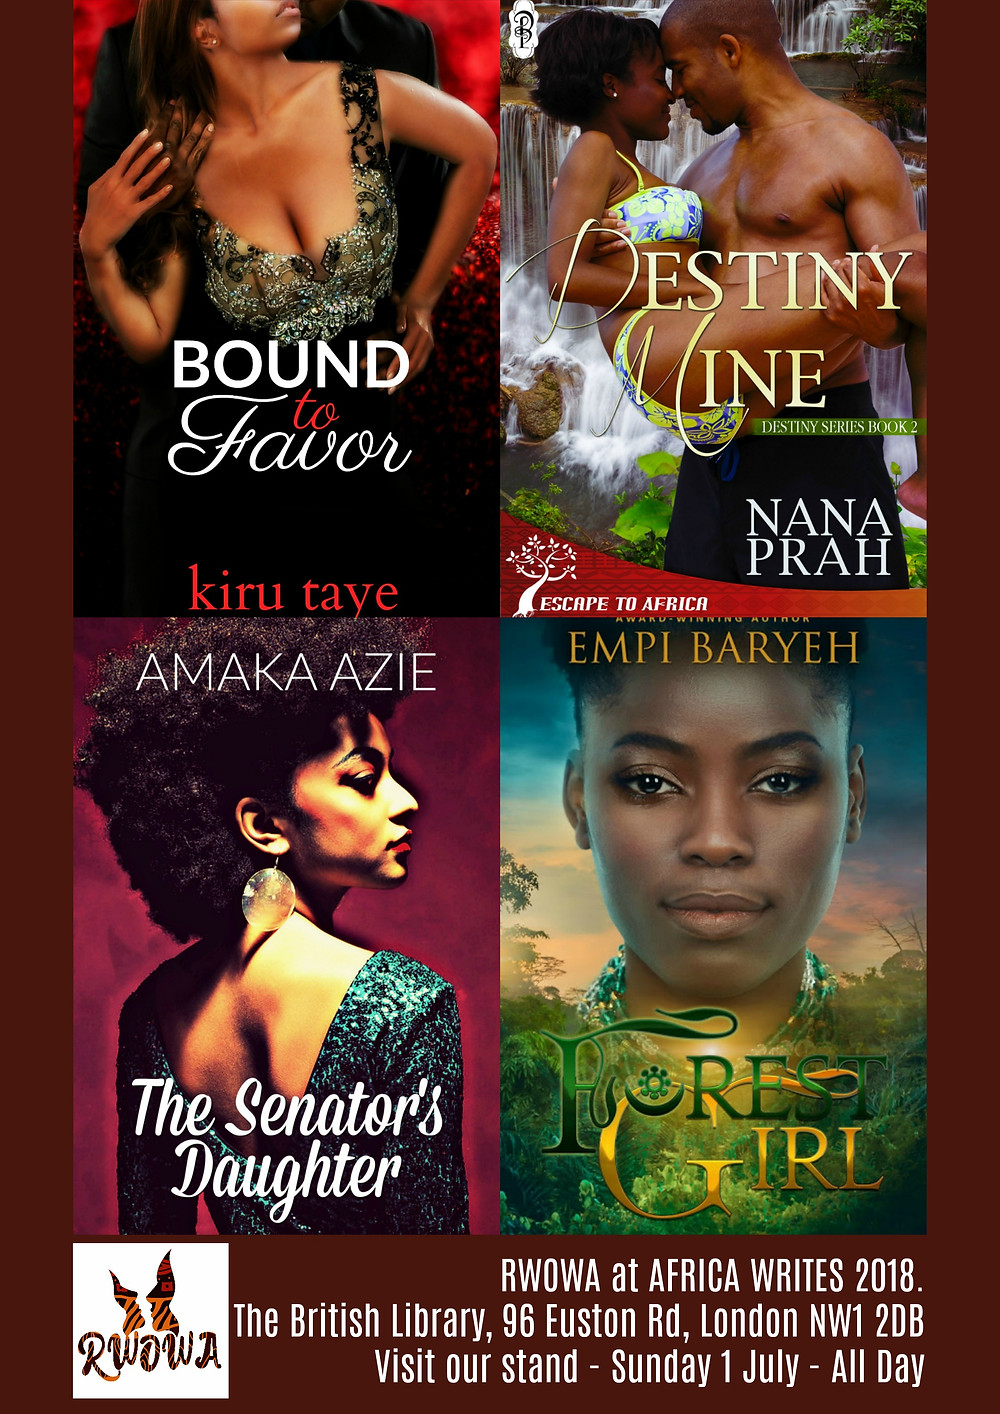 African Romance, books, African authors